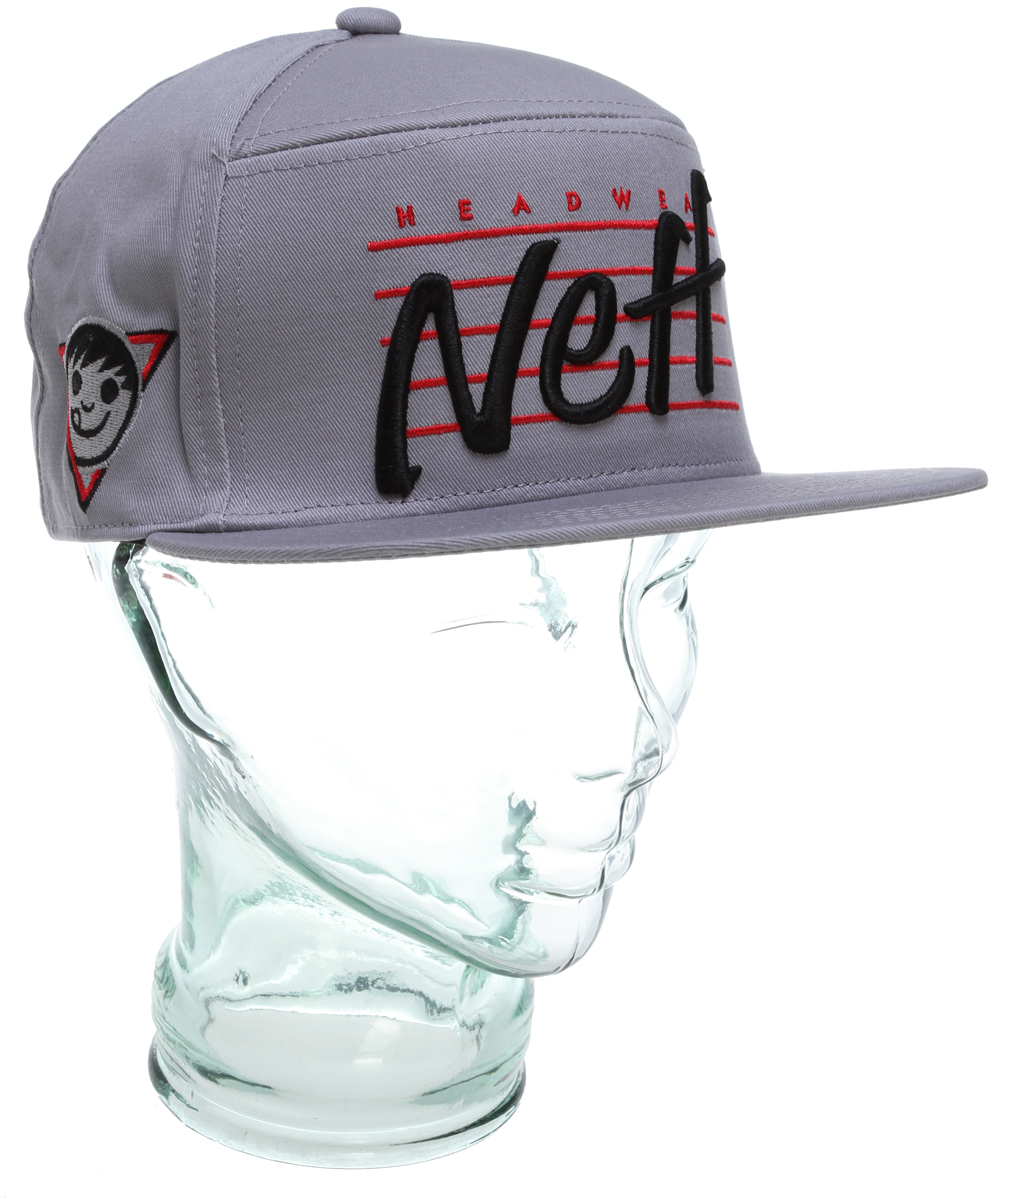 Skateboard Key Features of the Neff Vicer Cap: 100% Cotton Twill Adjustable - $14.99